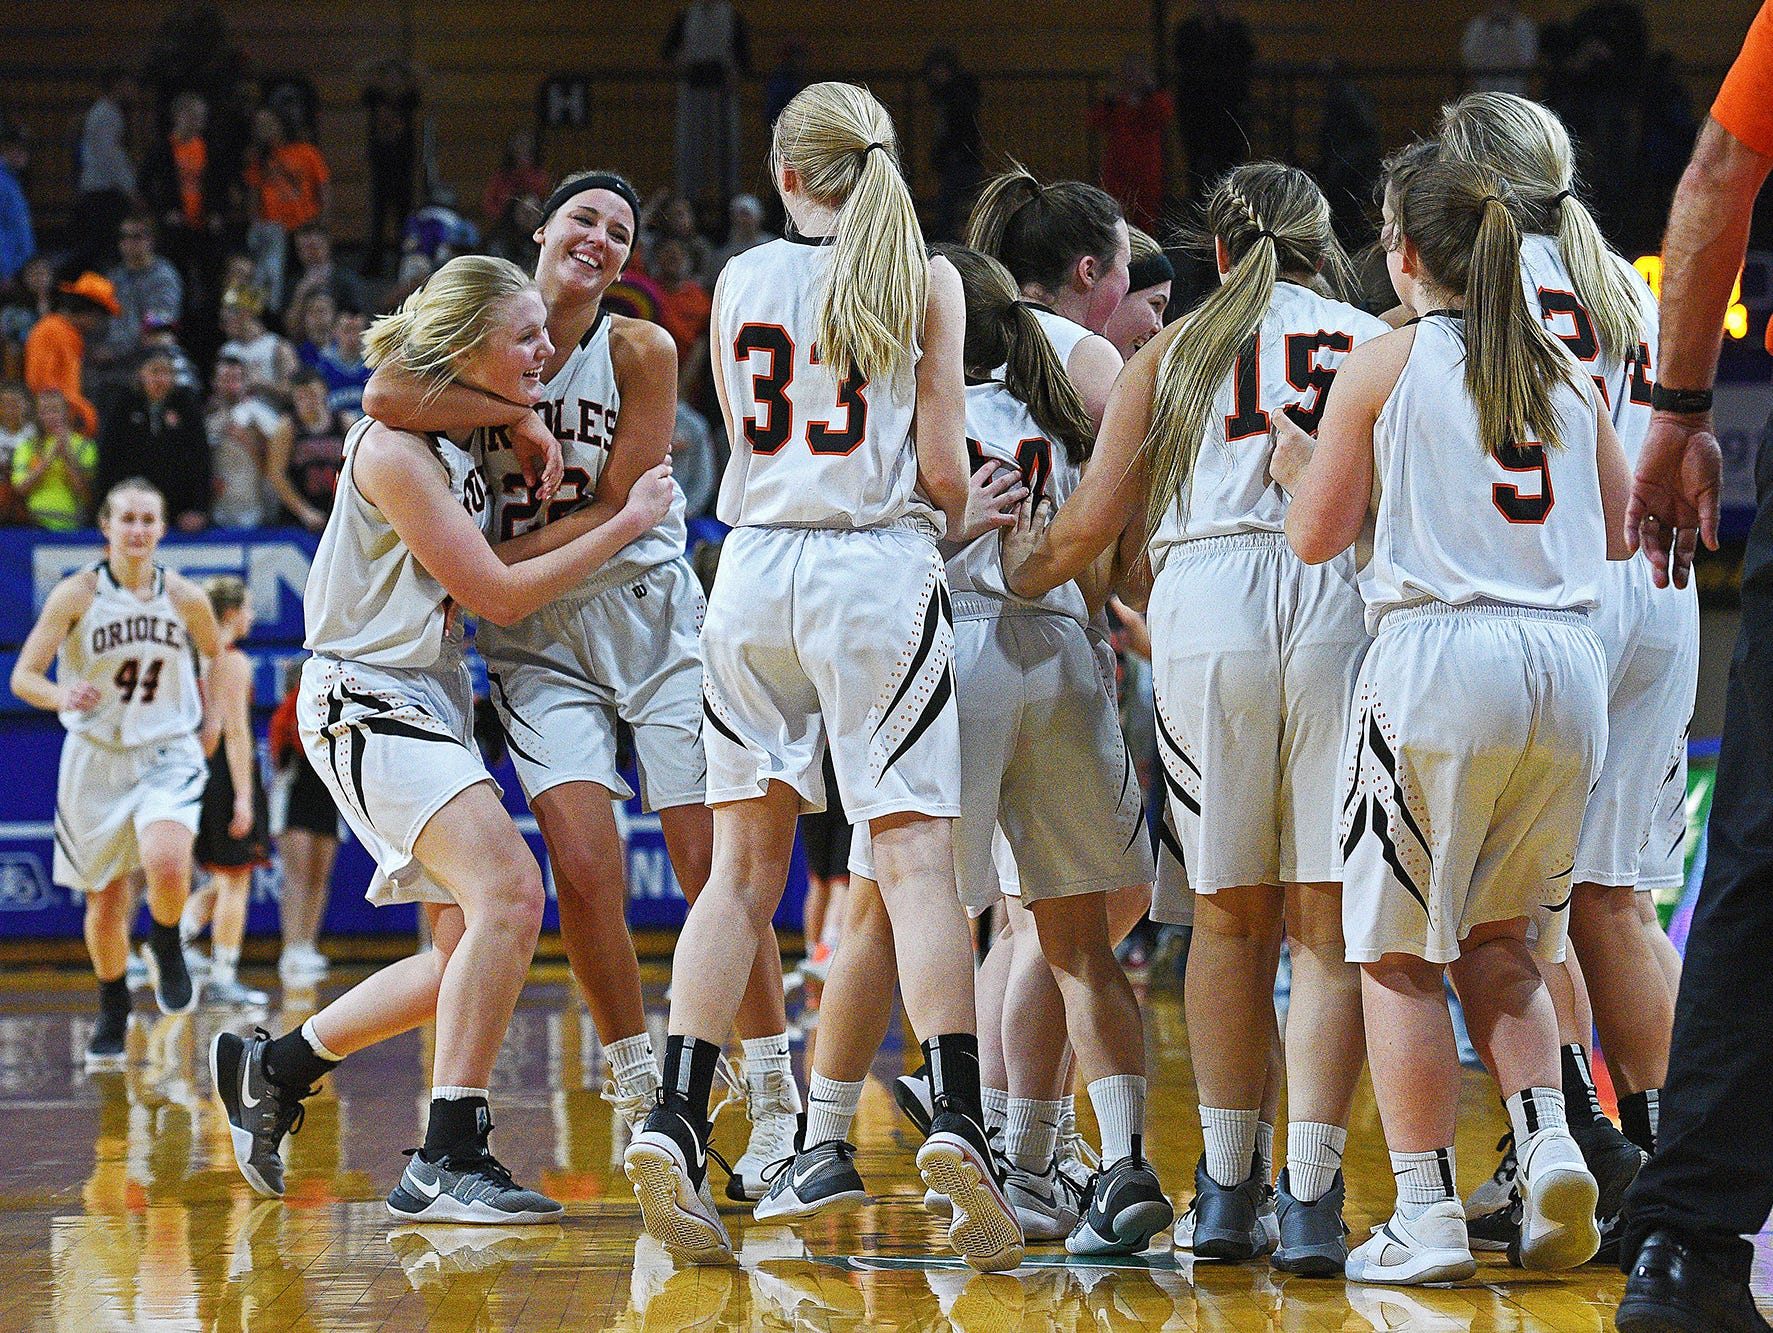 Lennox players celebrate their 63-58 win over Dell Rapids in a 2017 SDHSAA Class A State Girls Basketball Tournament quarterfinal game Thursday, March 9, 2017, at Frost Arena on the South Dakota State University campus in Brookings, S.D.